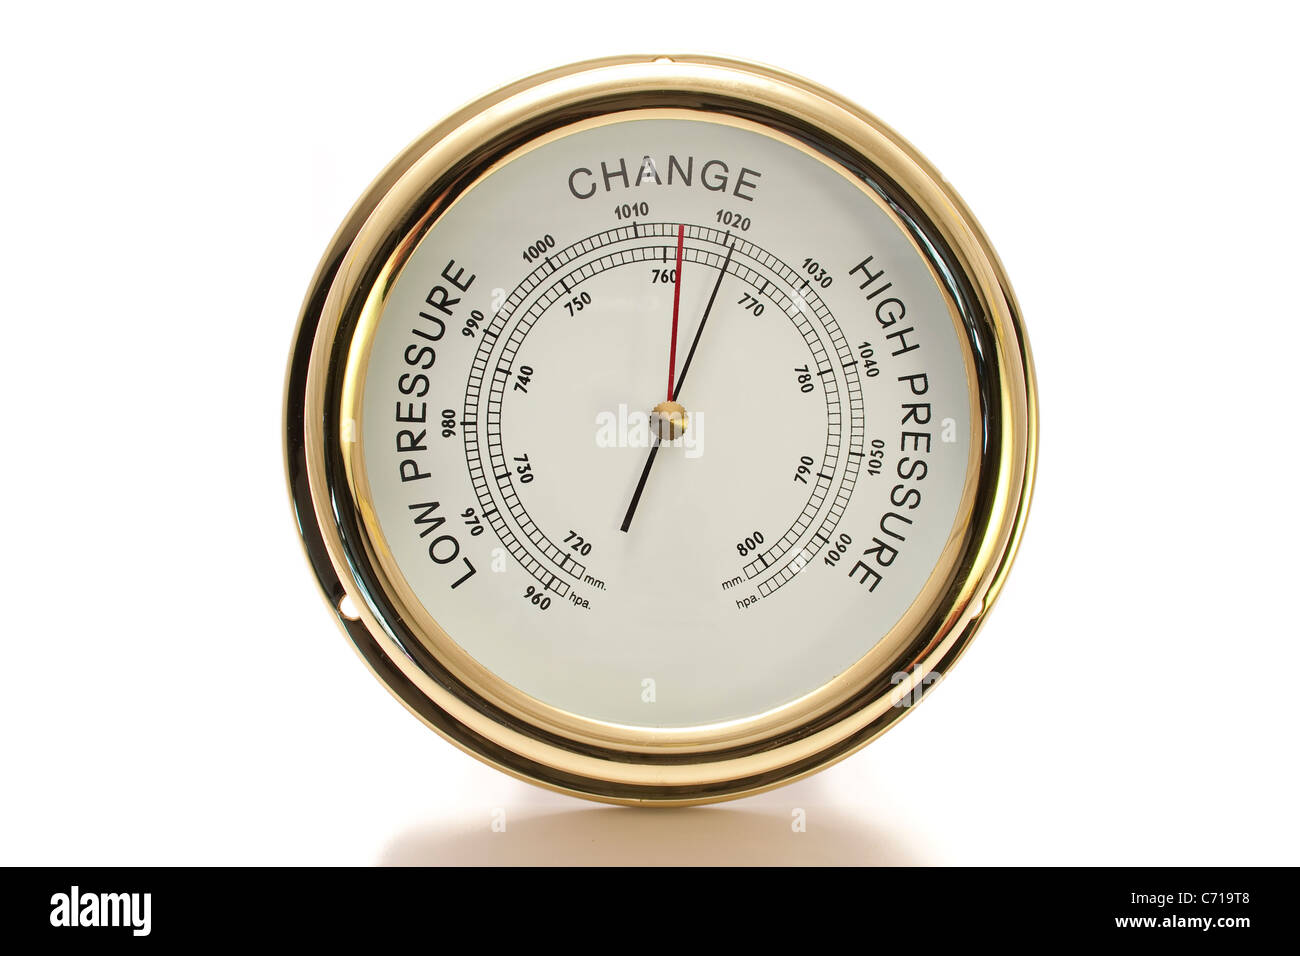 Barometer Brass with White Face Isolated - Stock Image